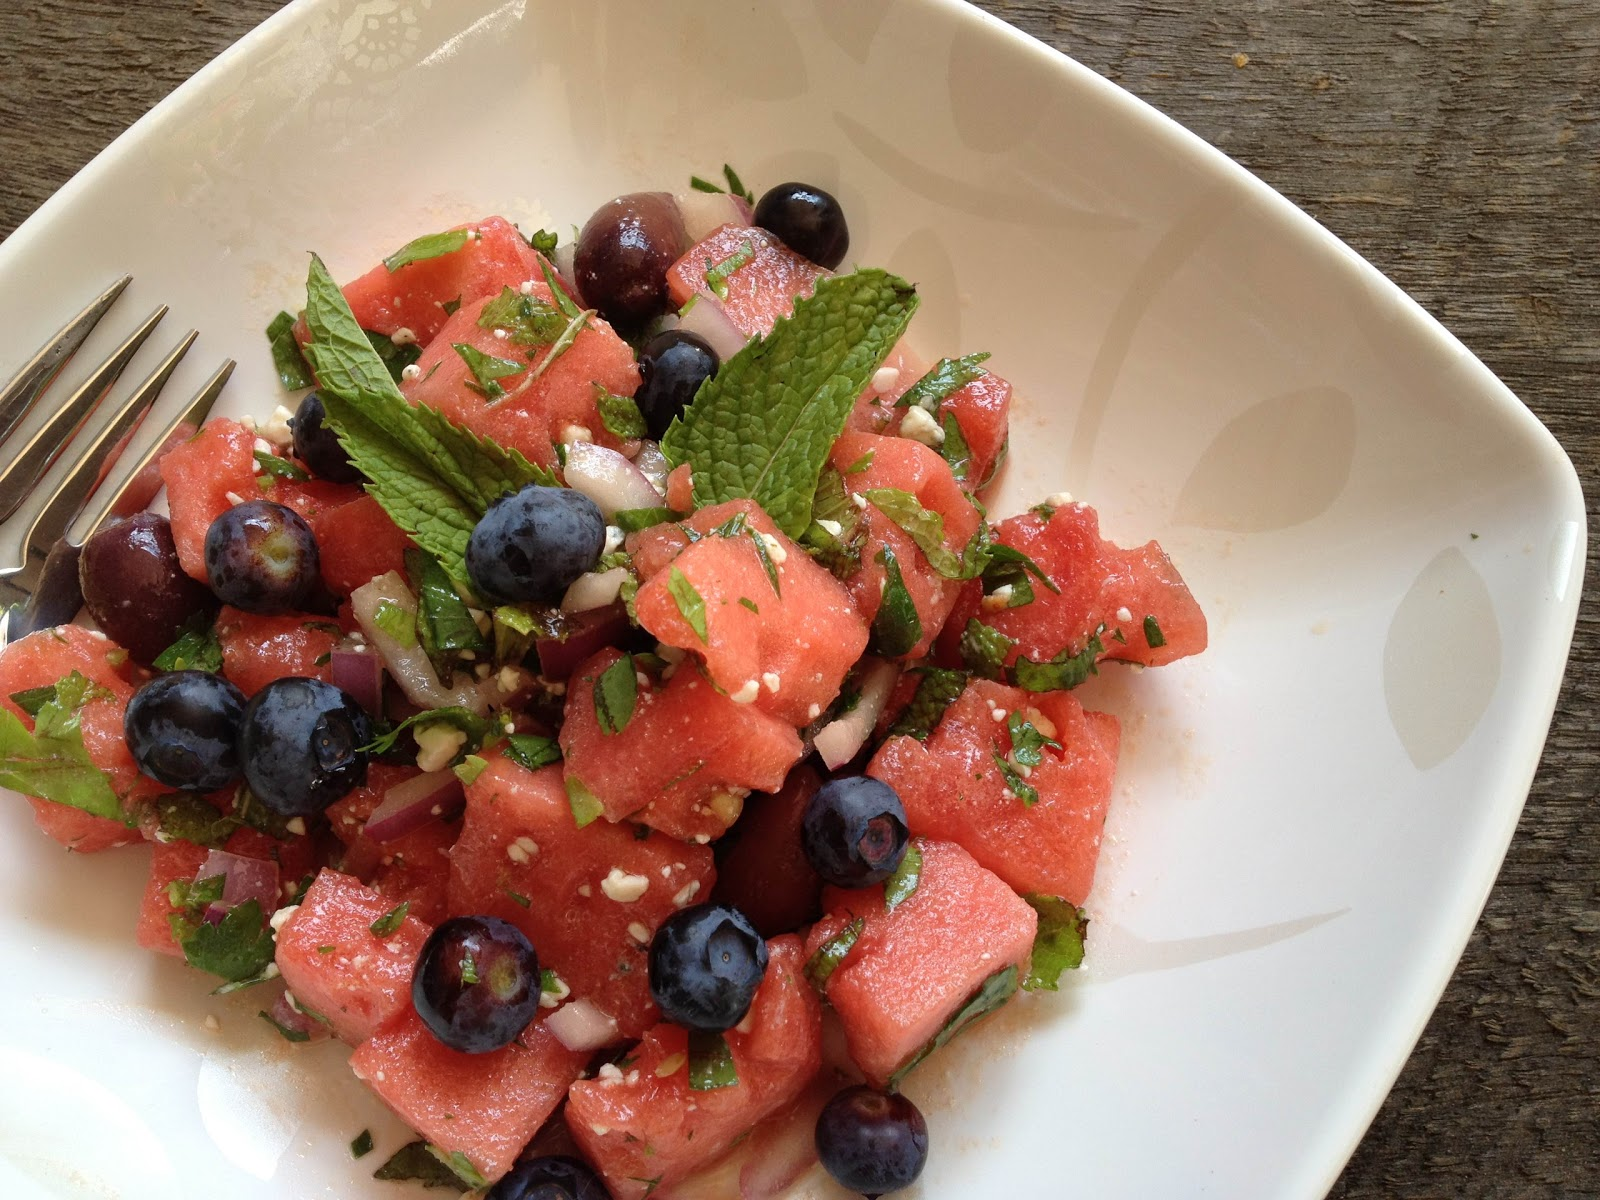 sprigs of rosemary watermelon and feta salad. Black Bedroom Furniture Sets. Home Design Ideas